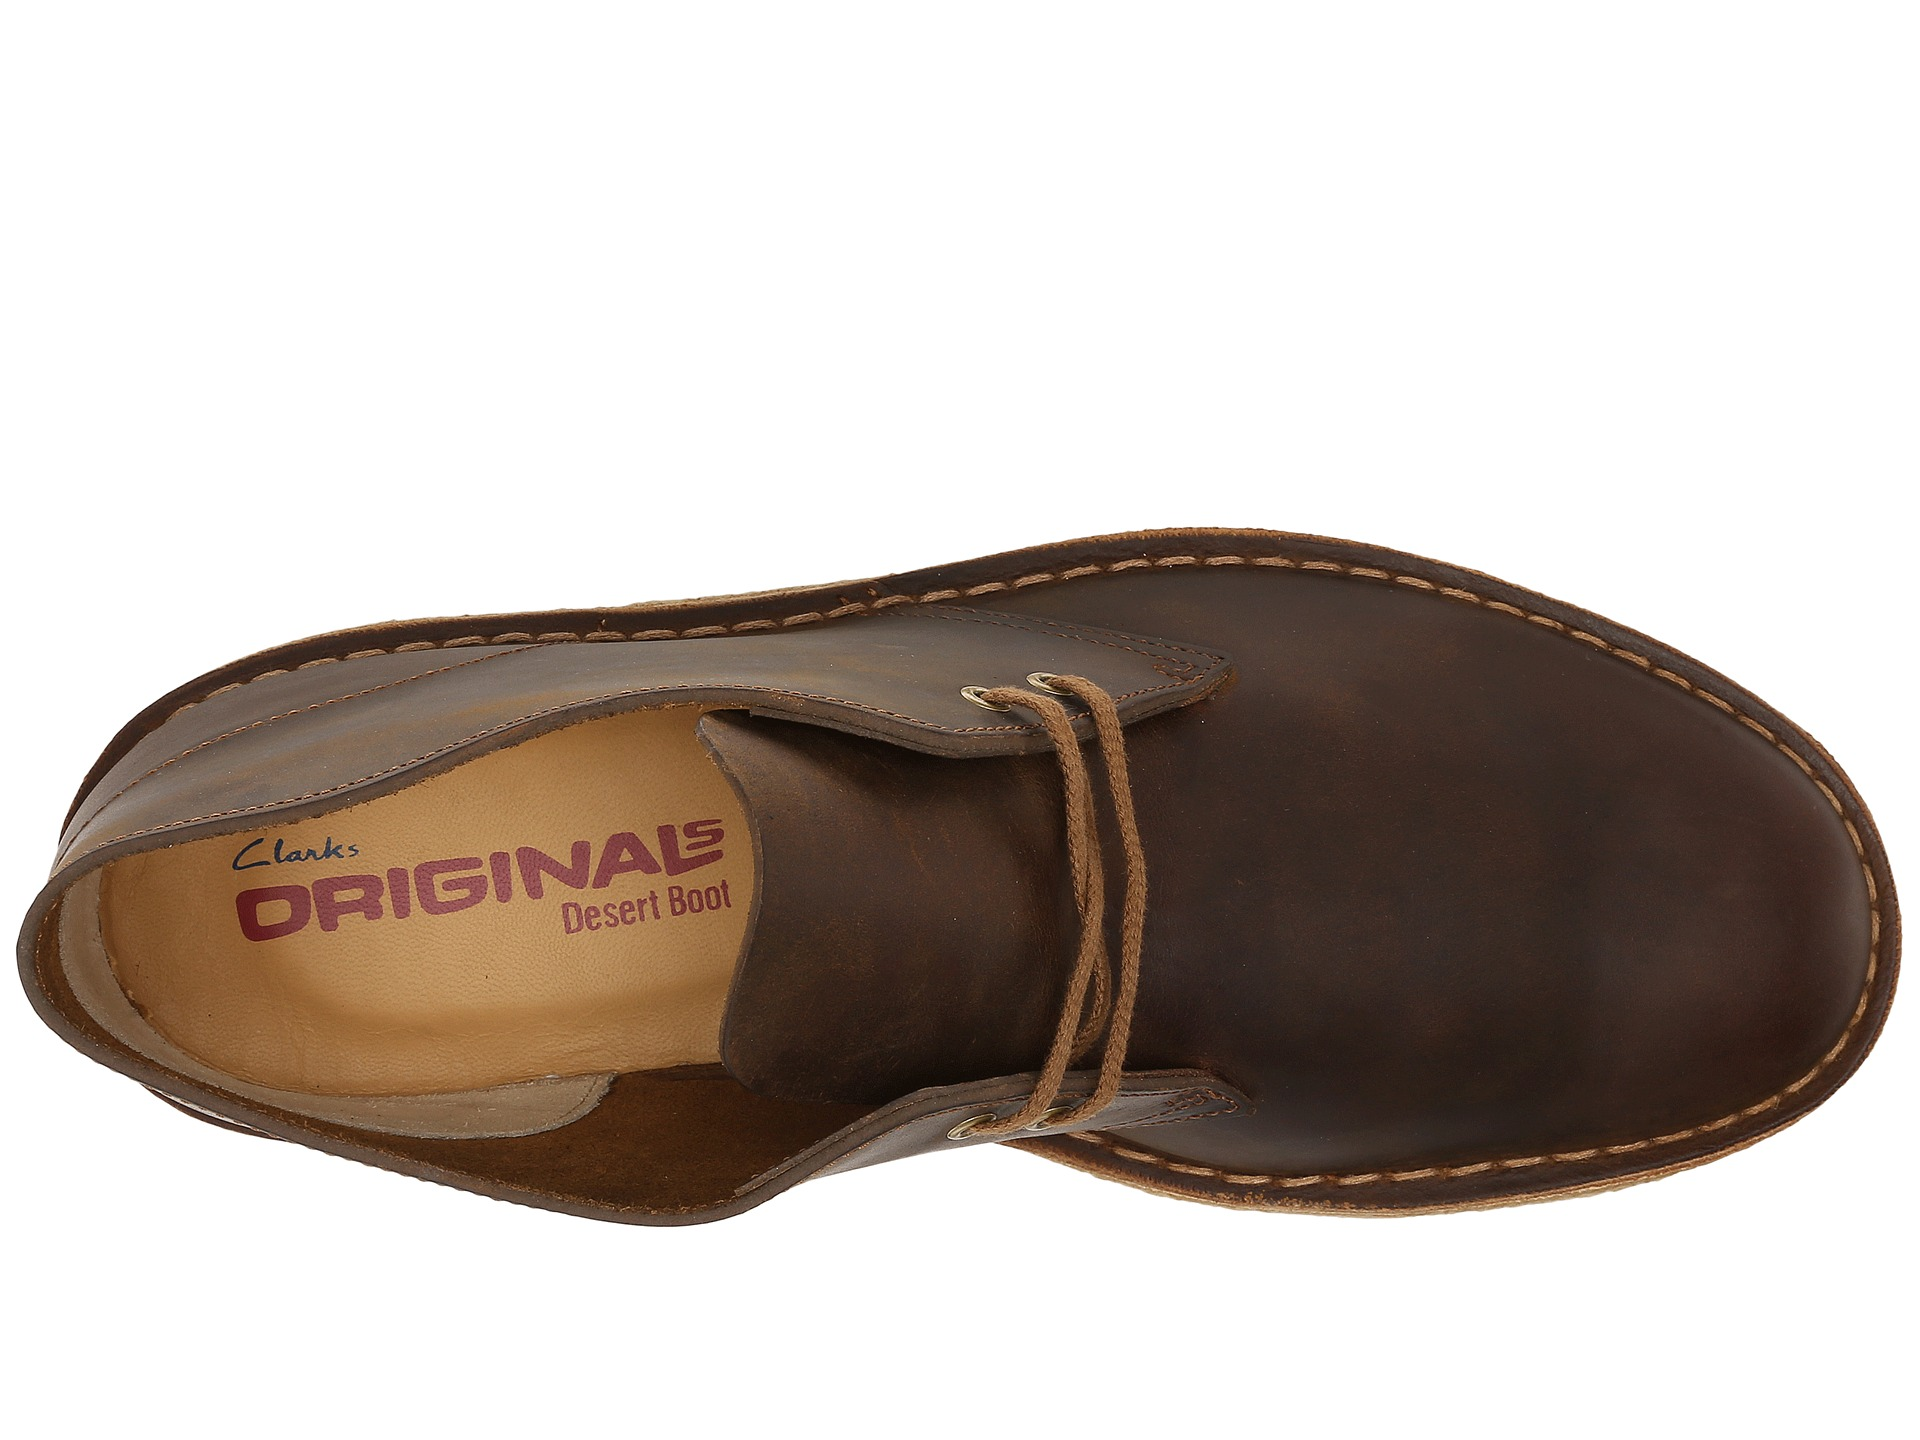 Clarks Desert Boot Taupe Suede Zappos Com Free Shipping